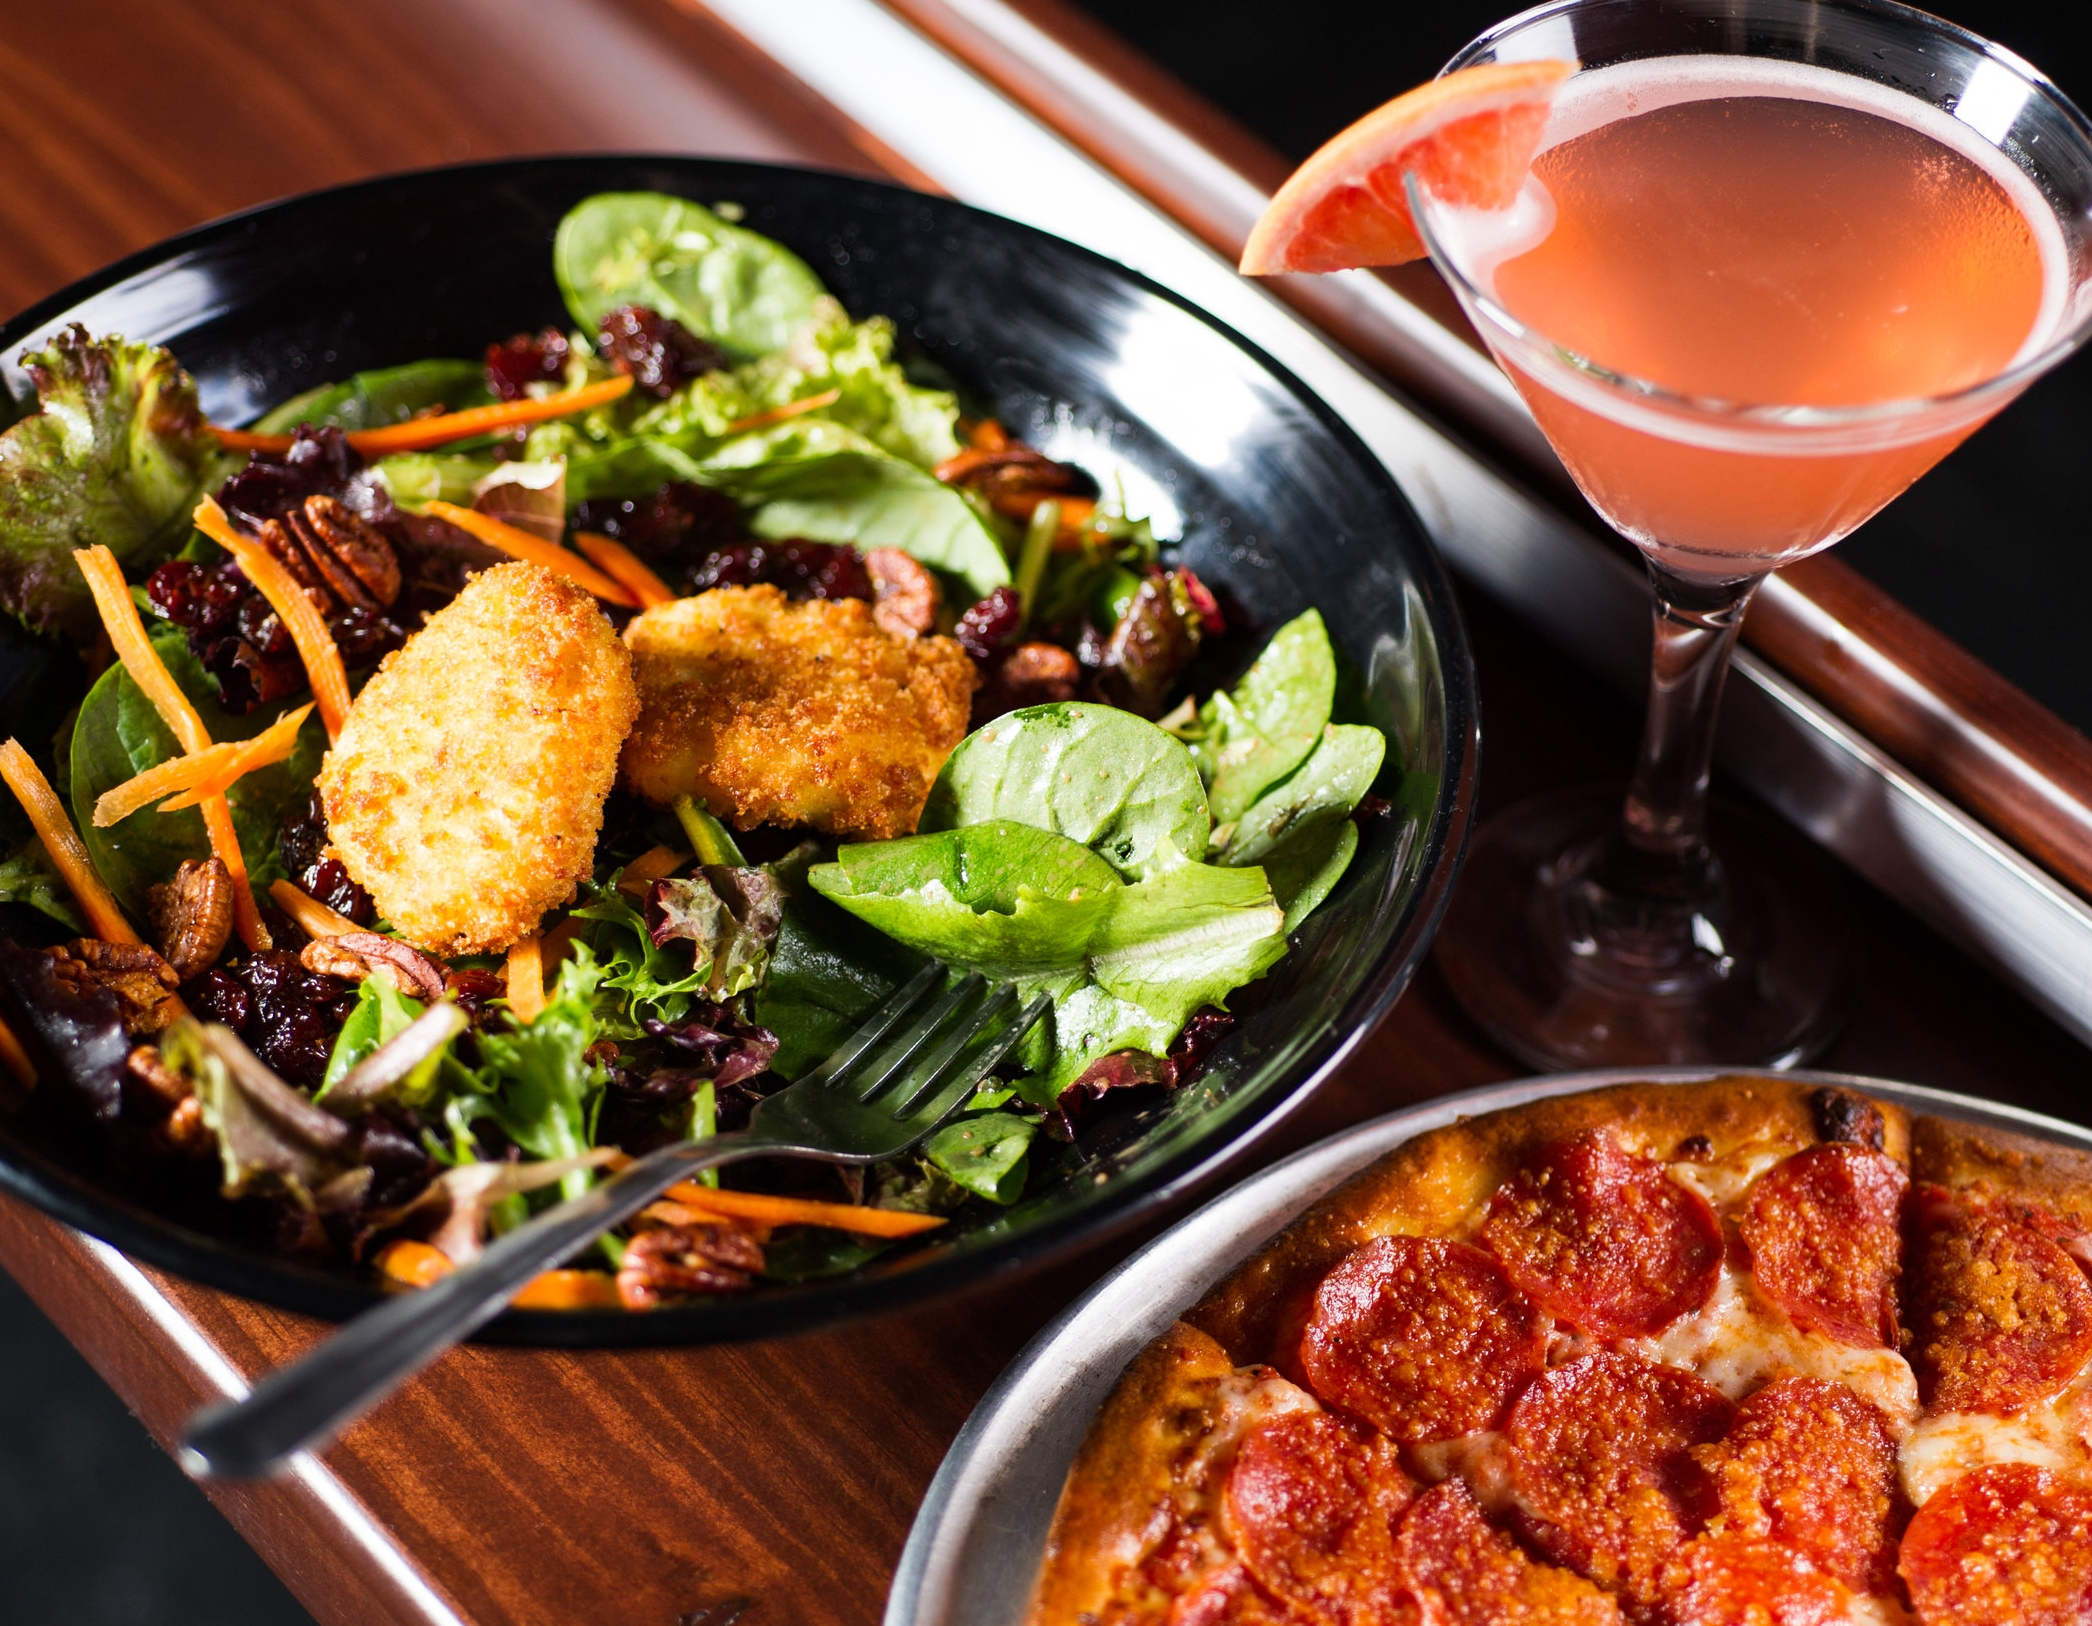 Fried Goat Cheese Salad, Rio Star, and Pepperoni Pizza